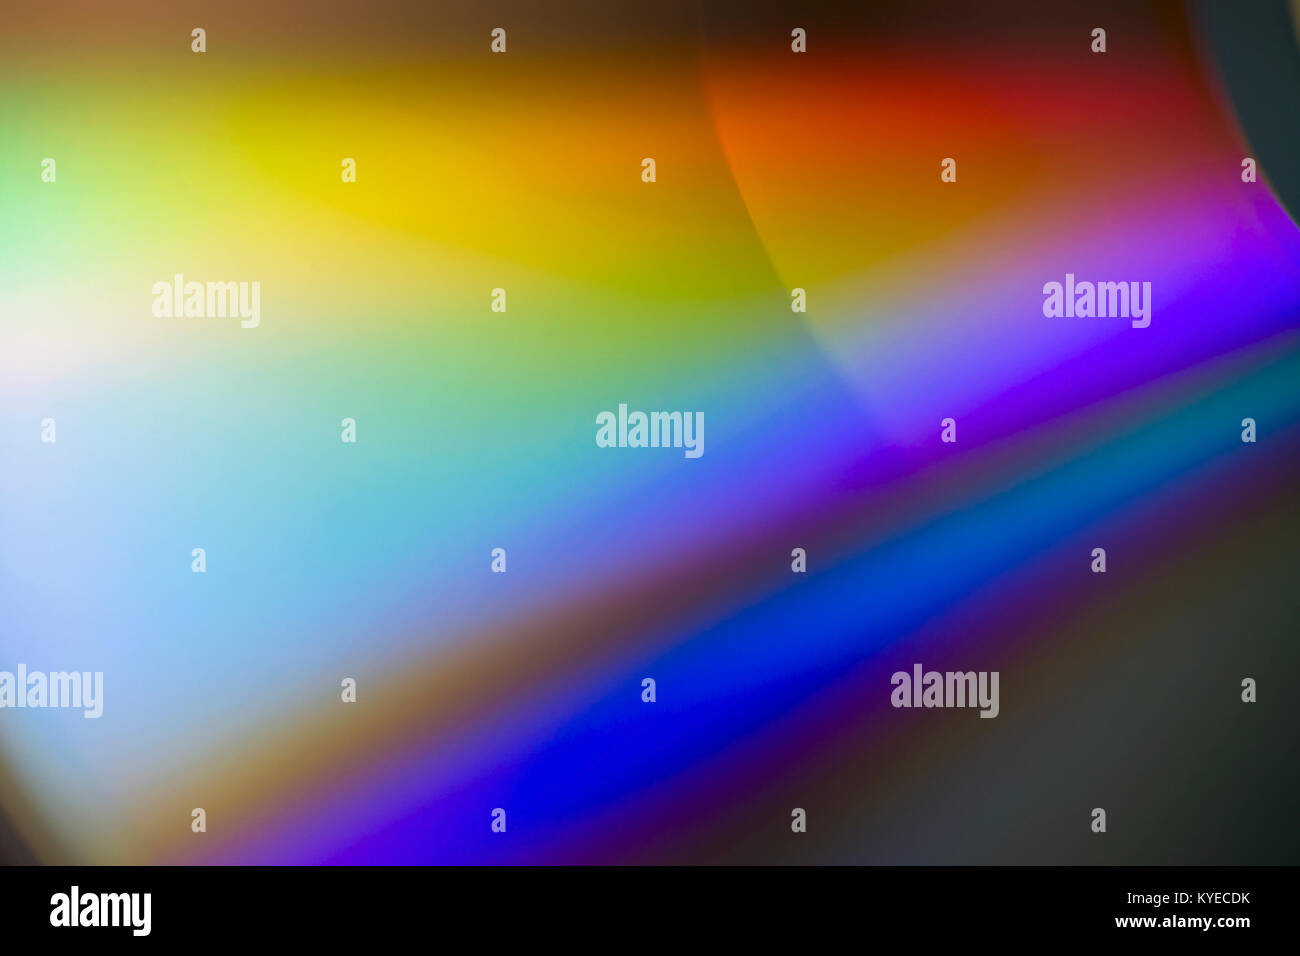 Colorful compact disk light reflection - Stock Image